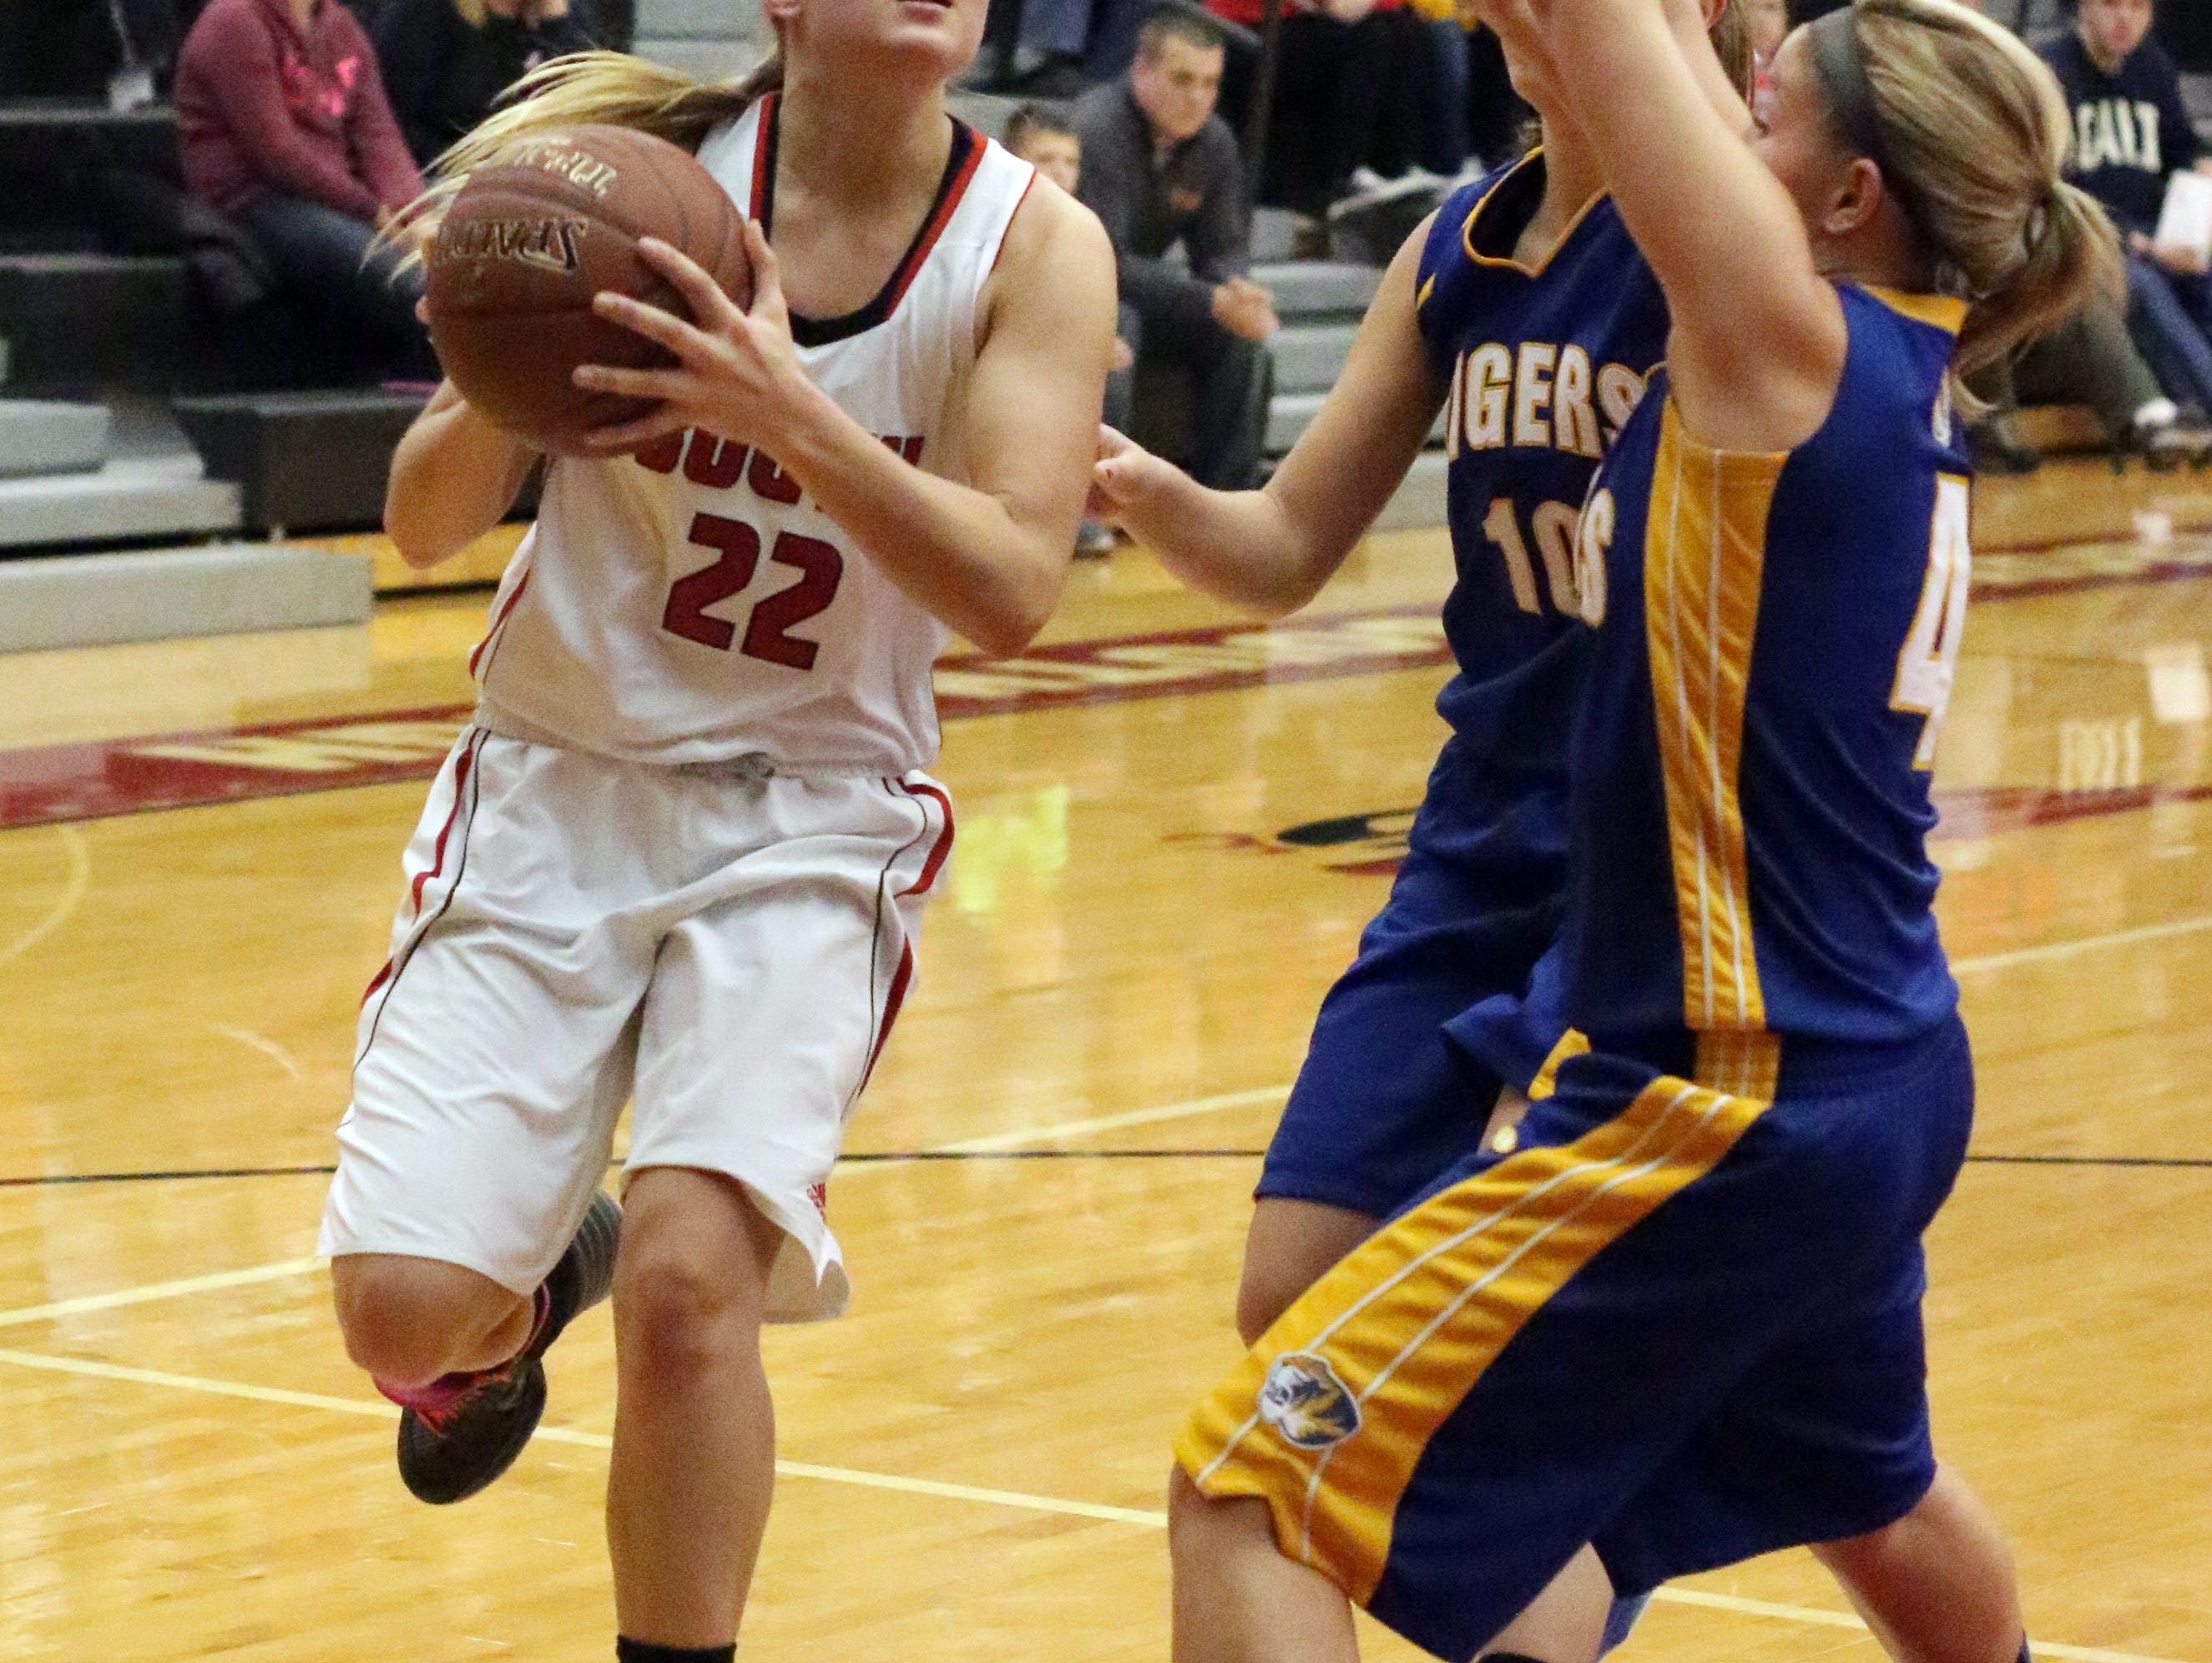 Senior Jessika McNellis was the Redwings leading scorer and rebounder last year and will be one of the top players in the FRCC this season.